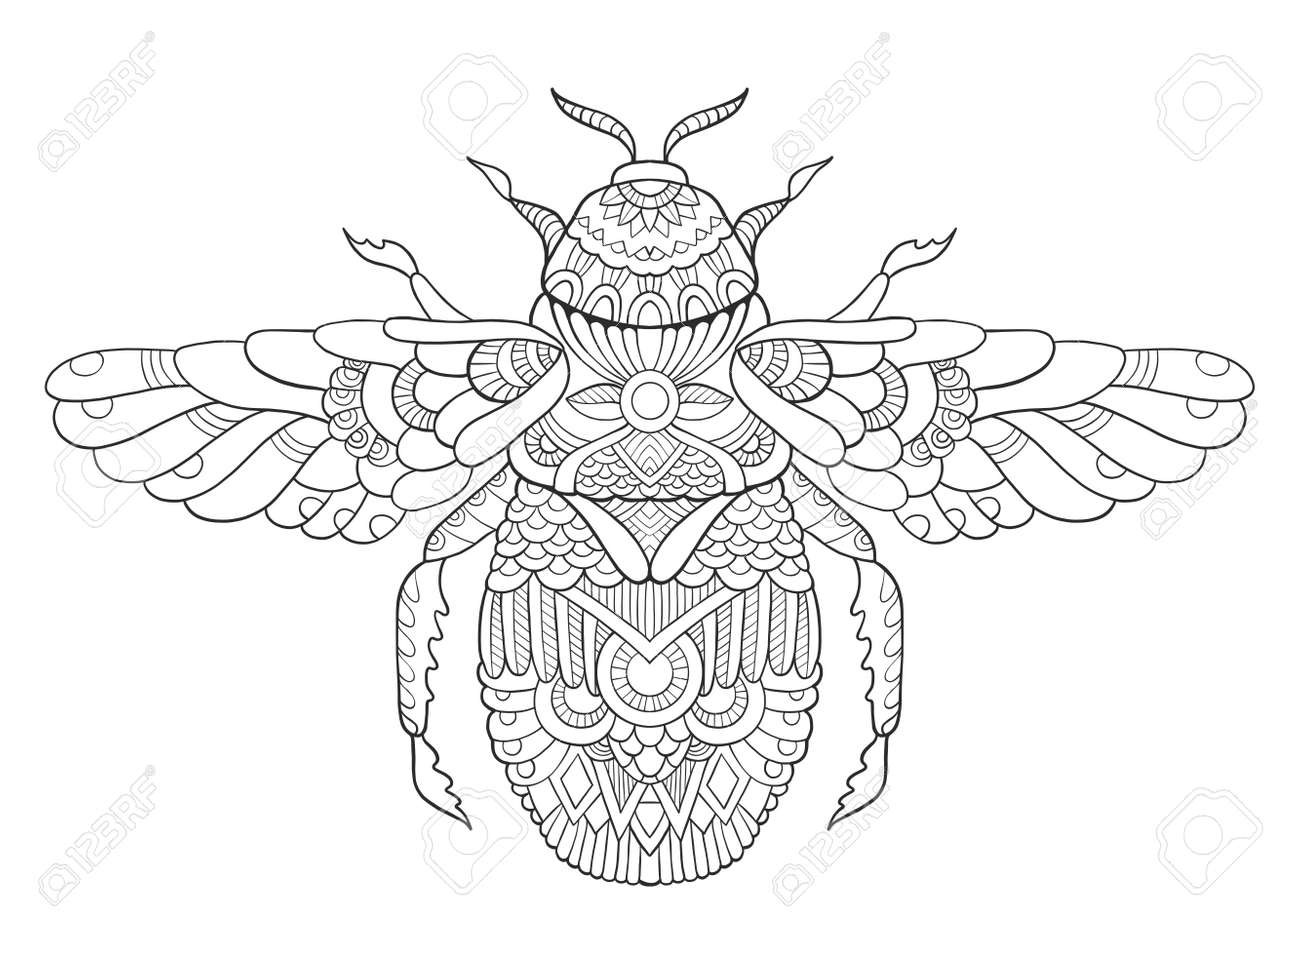 Bumblebee Coloring Book For Adults Vector Illustration. Anti-stress ...